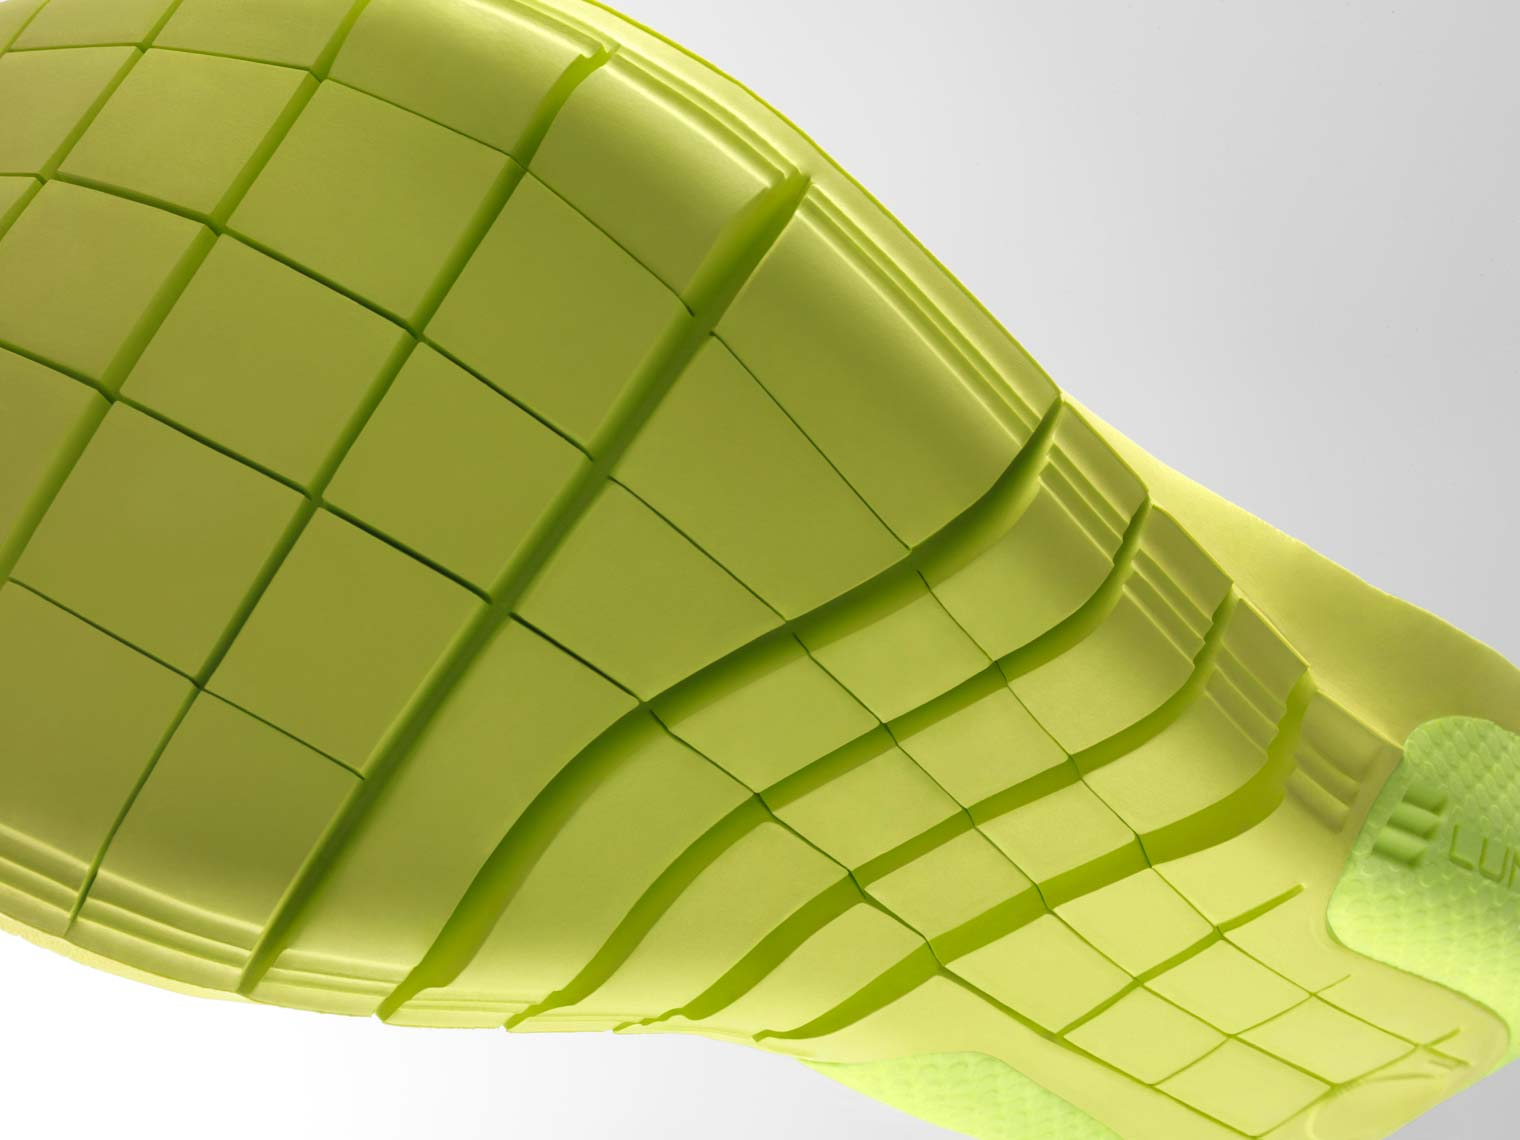 nike lunar lon footbed being twisted on white background